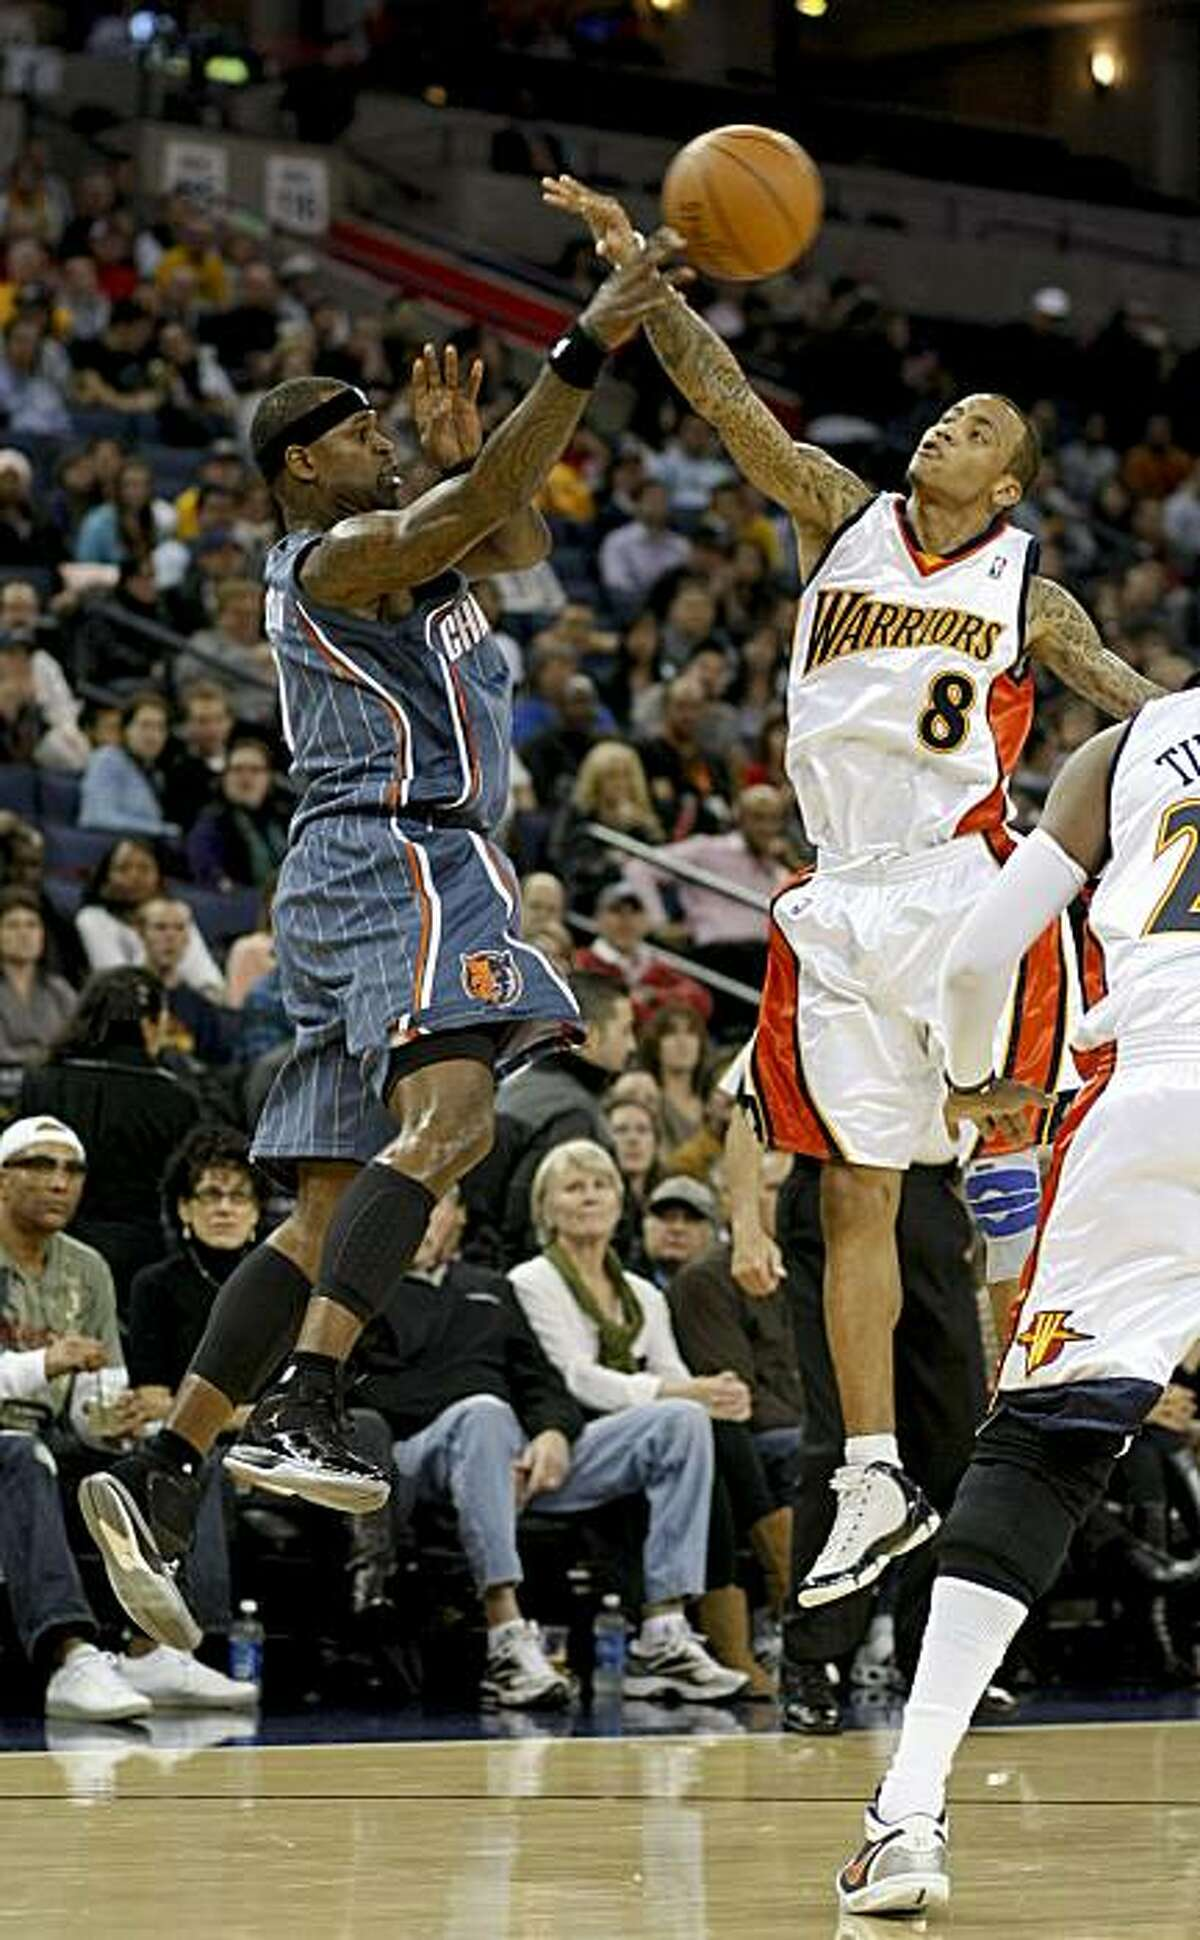 Charlotte Bobcats' Stephen Jackson with a pass over Golden State Warriors' Monta Ellis in the first half as the Golden State Warriors take on the Charlotte Bobcats in Oakland on Friday.